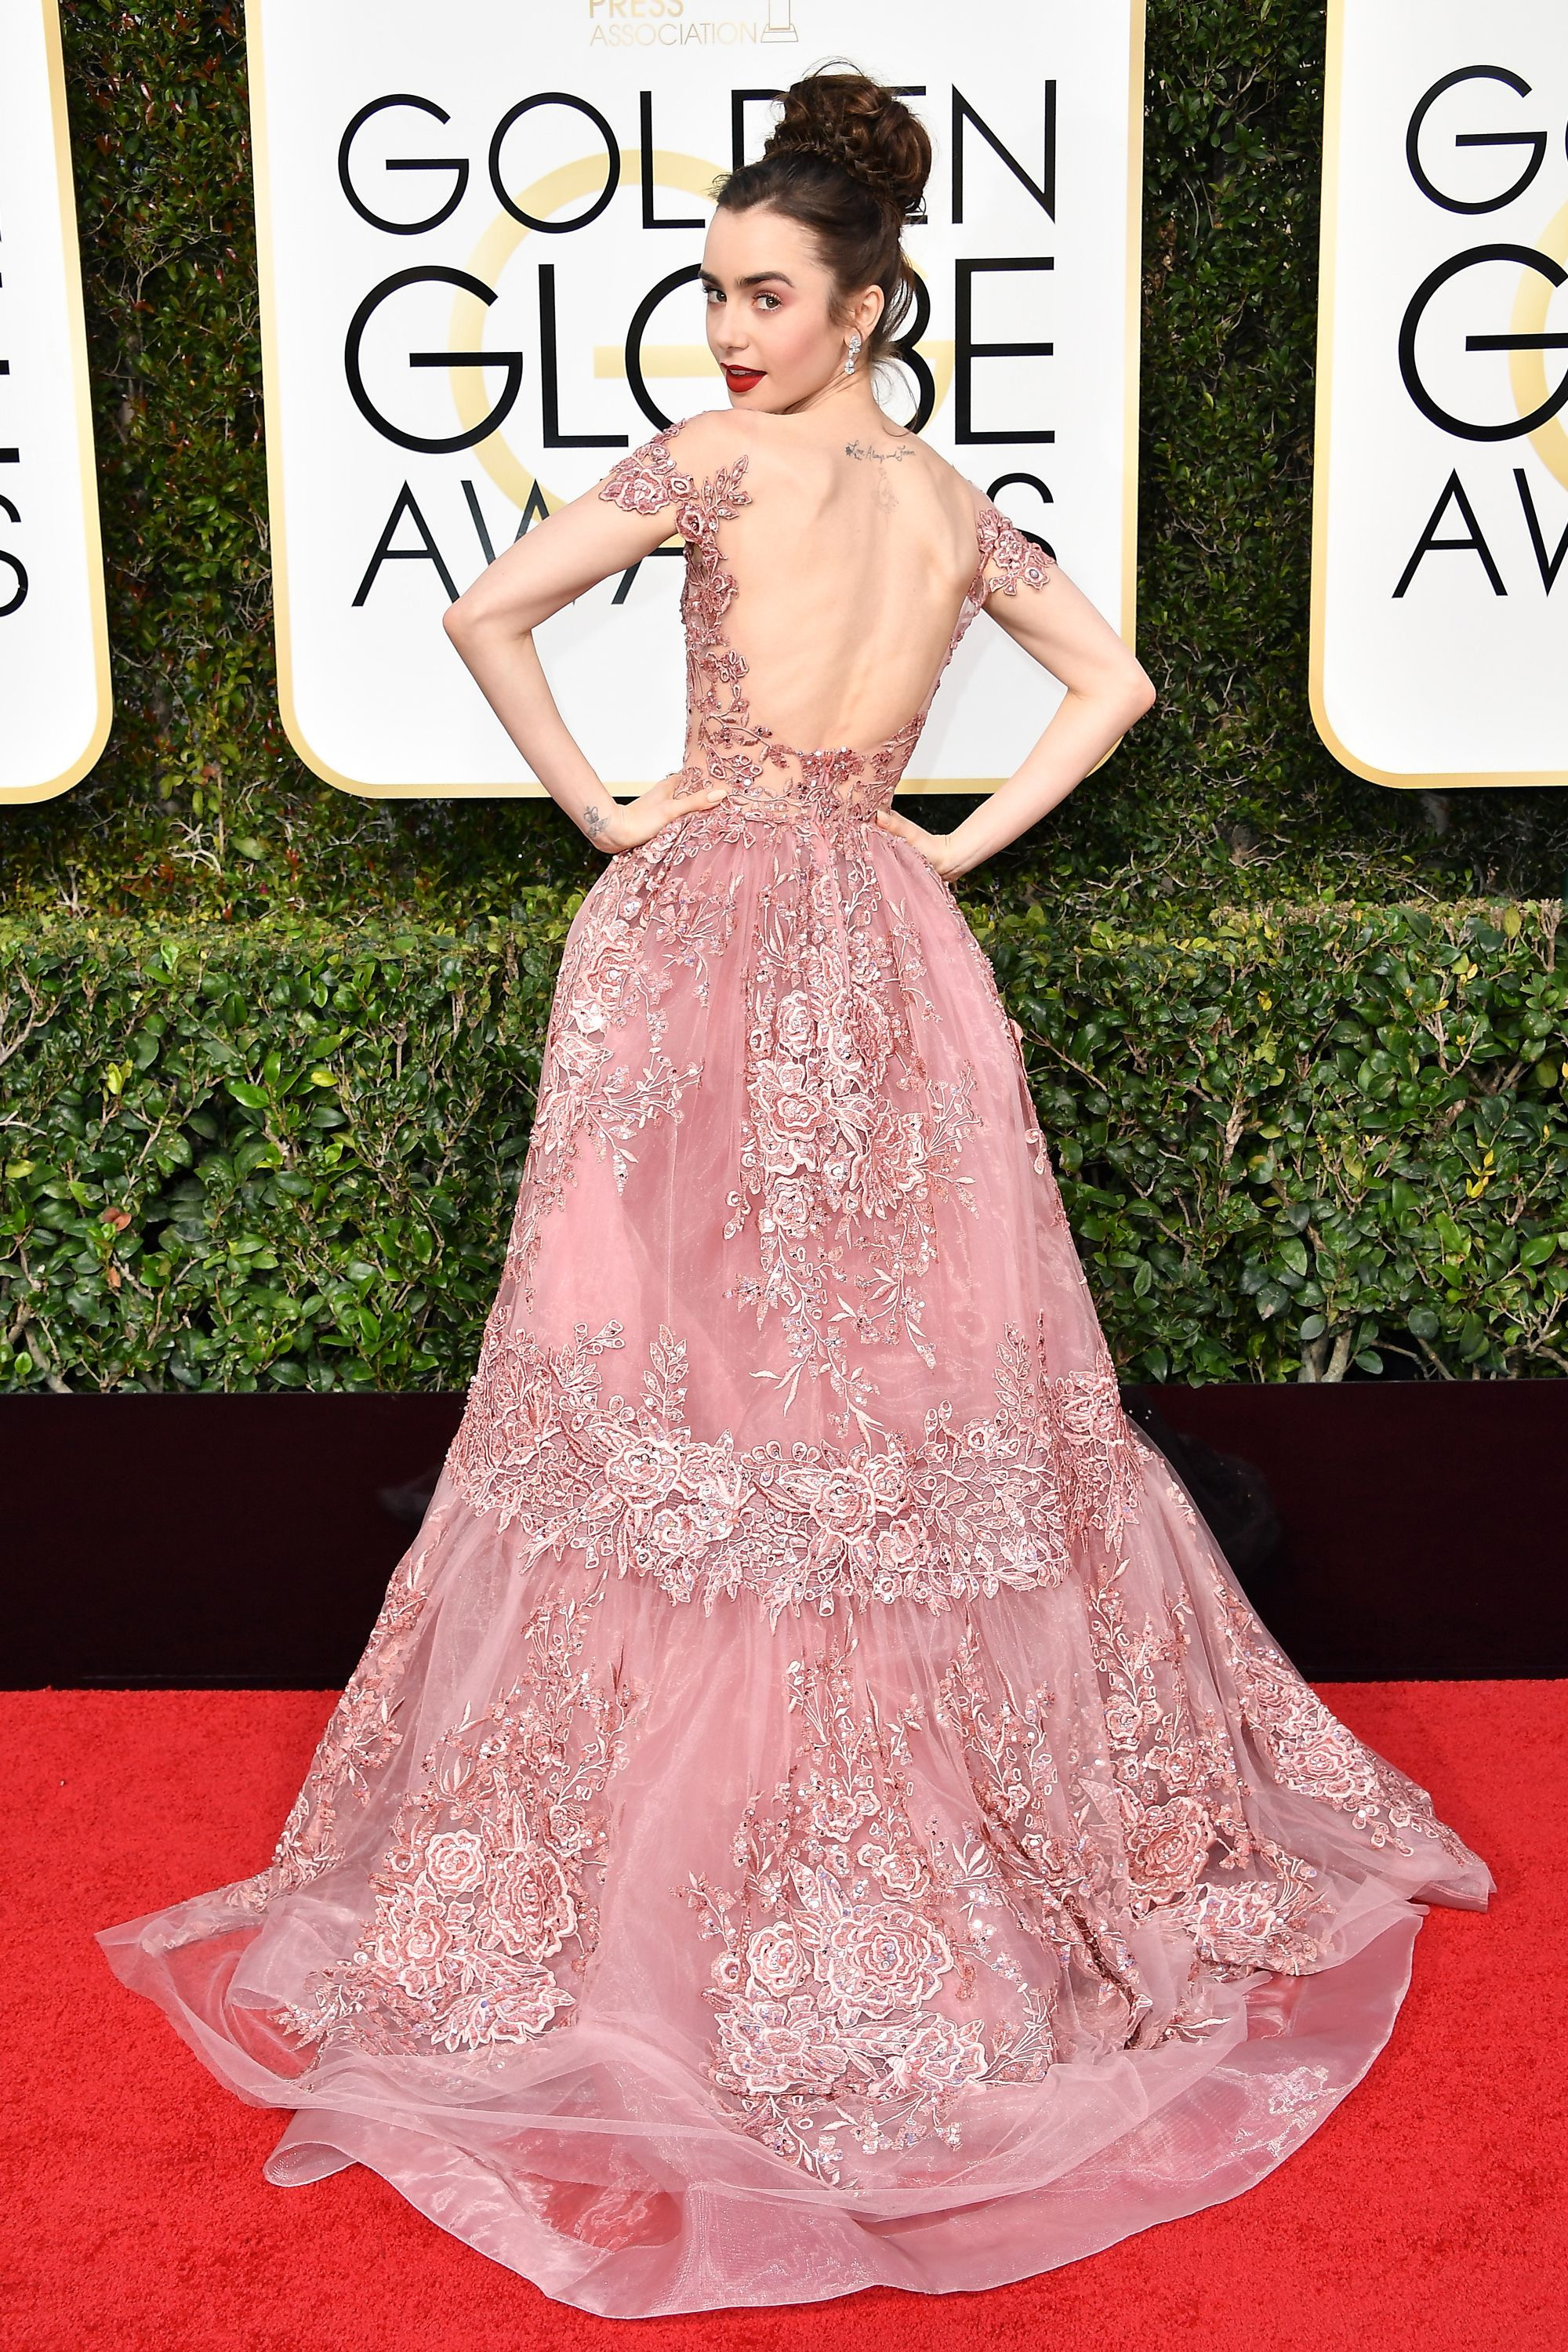 Whimsical Beauty on the Red Carpet: Lily Collins magically appeared straight out of a fairytale storybook at the 2017 Golden Globes, in a romantic, dusty pink-rose colored Zuhair Murad ball gown.